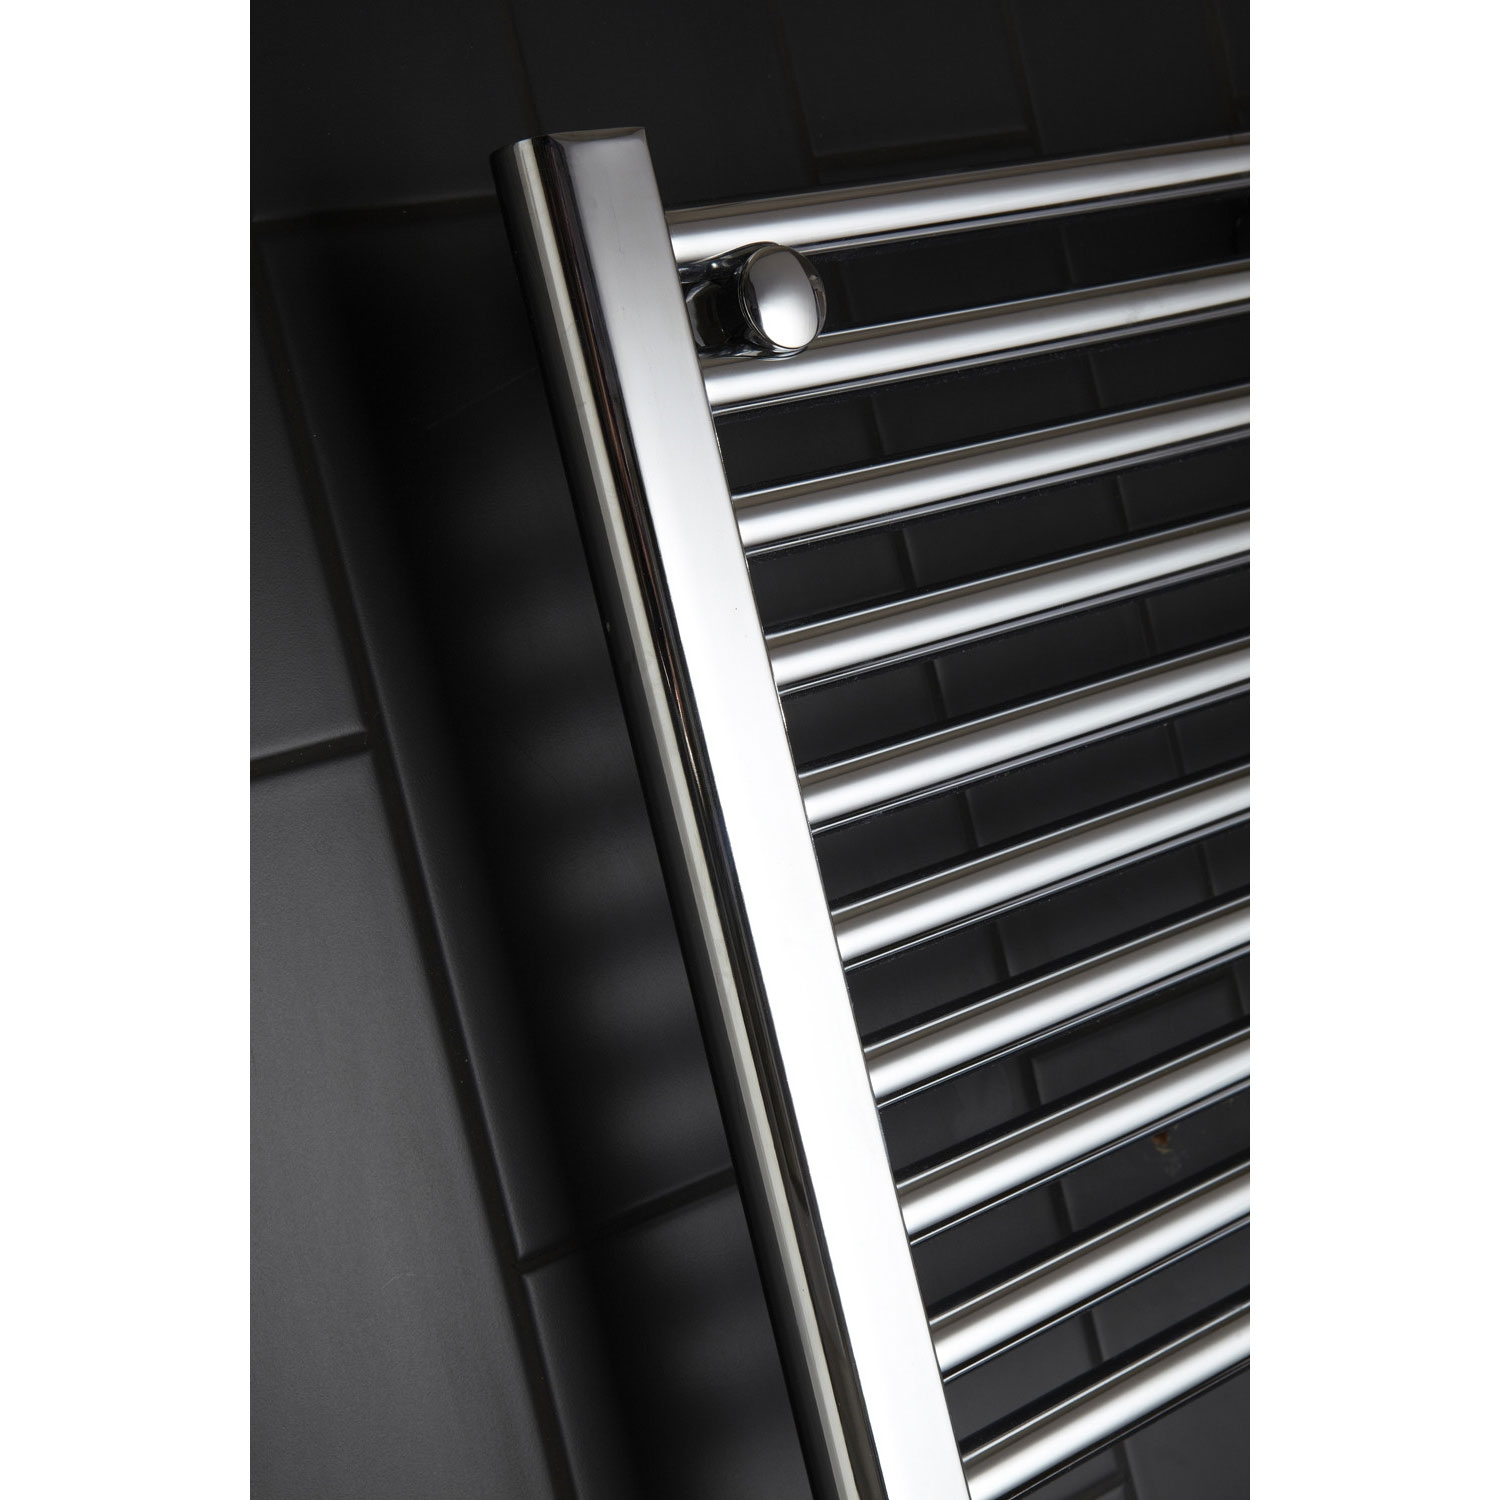 Verona Flat Designer Heated Towel Rail 1100mm H x 600mm W Chrome